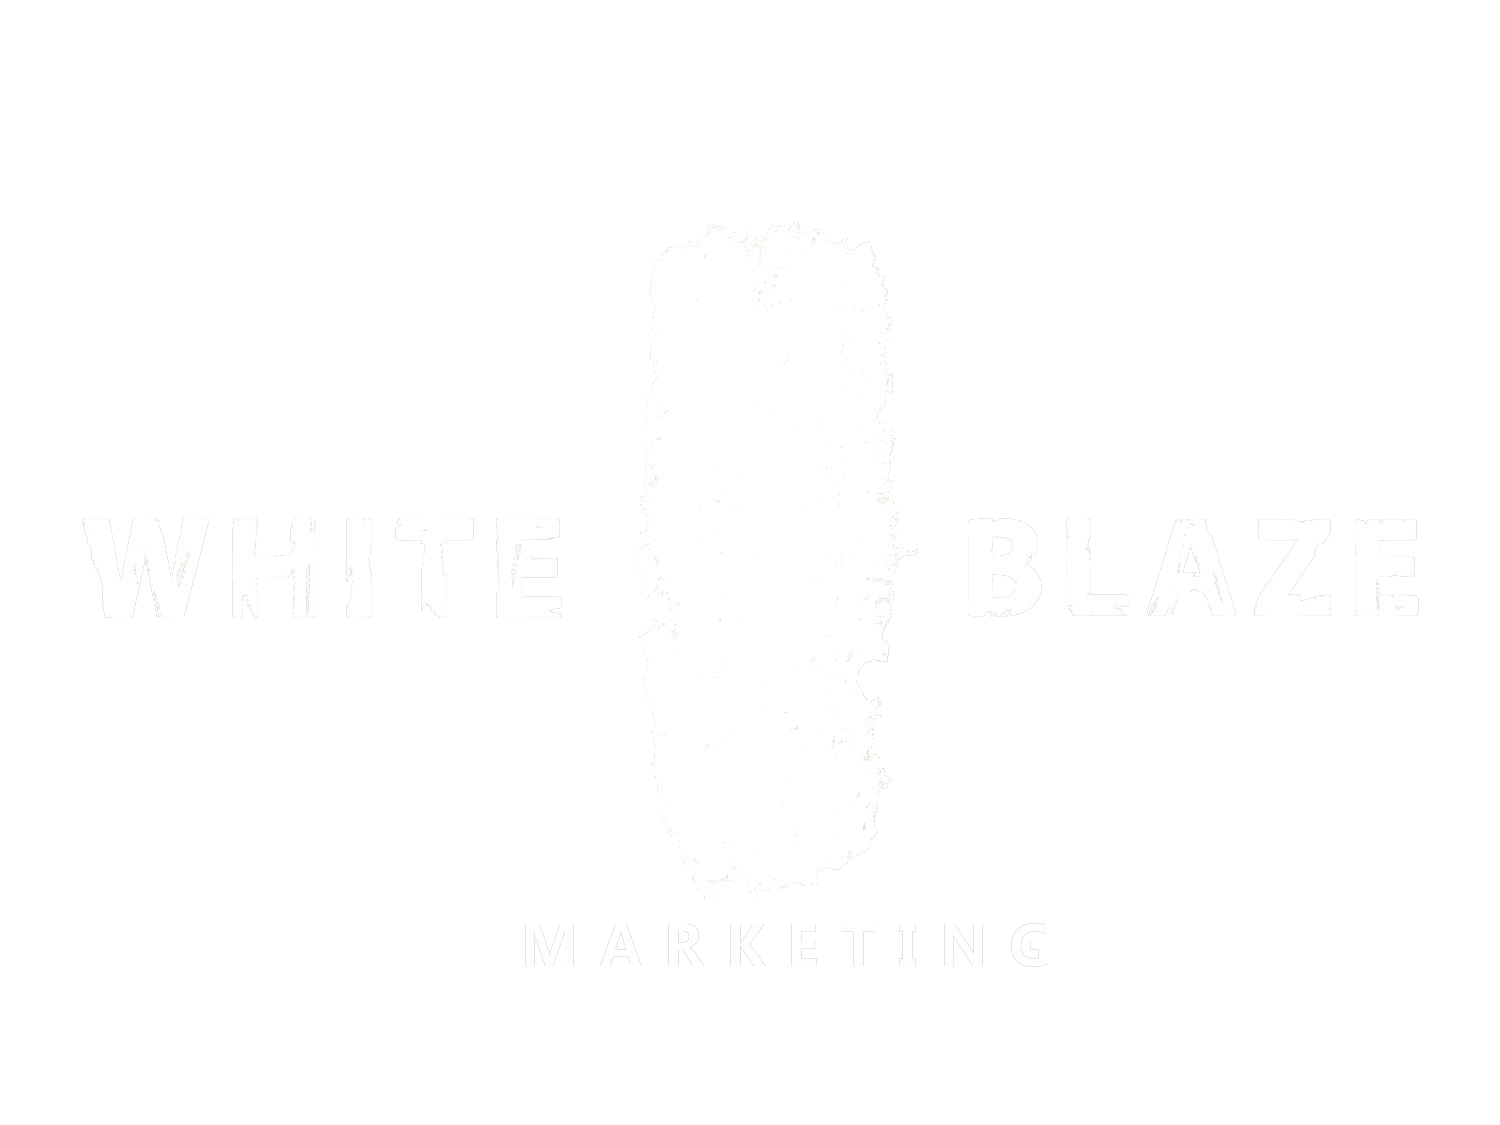 NC Marketing & Video Production Agency | White Blaze Marketing